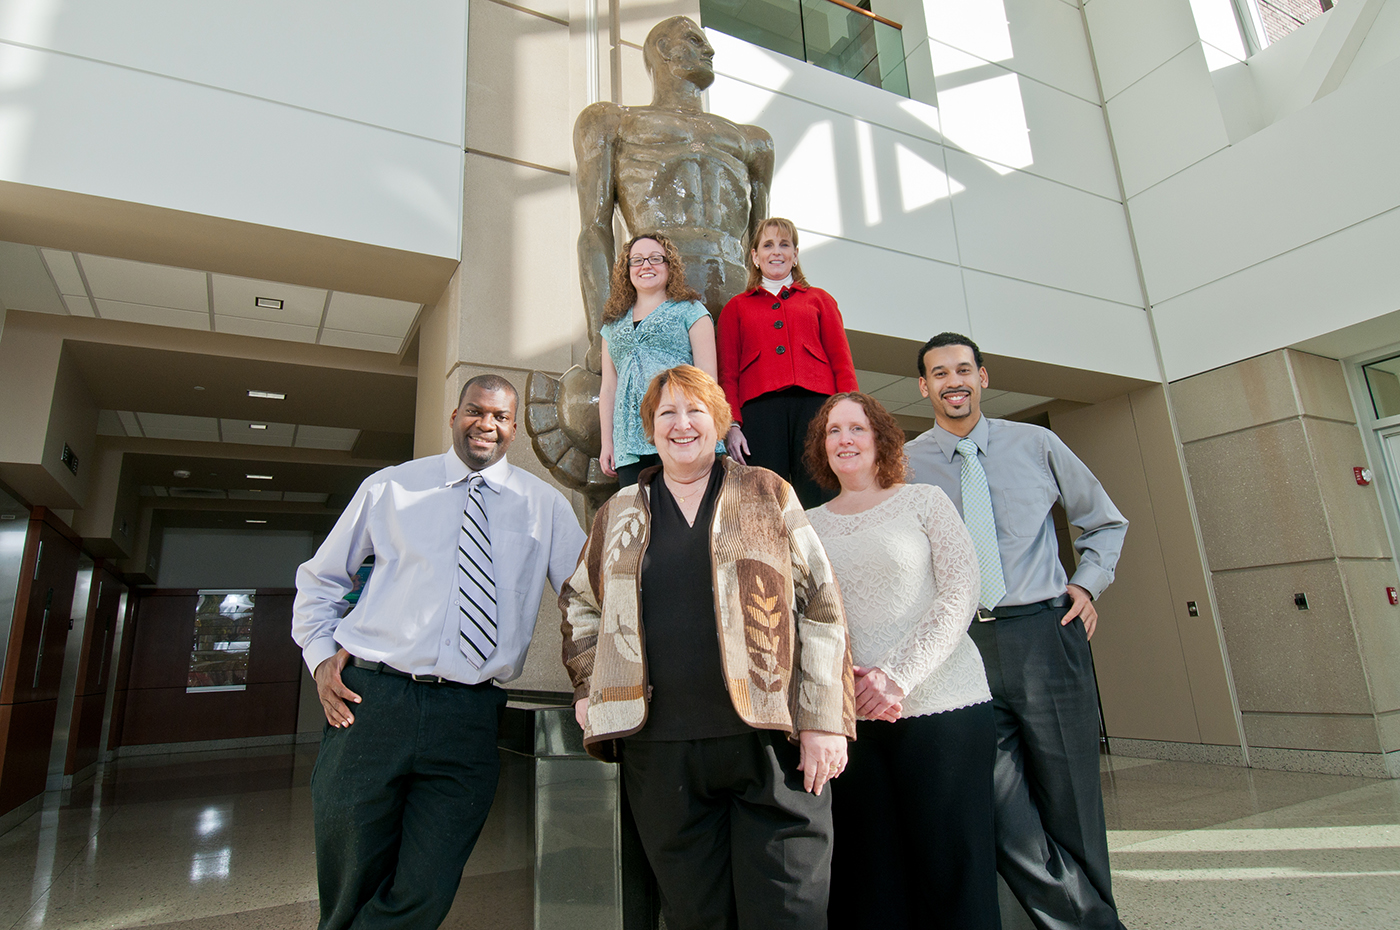 MSU staff standing in front of Sparty Statue